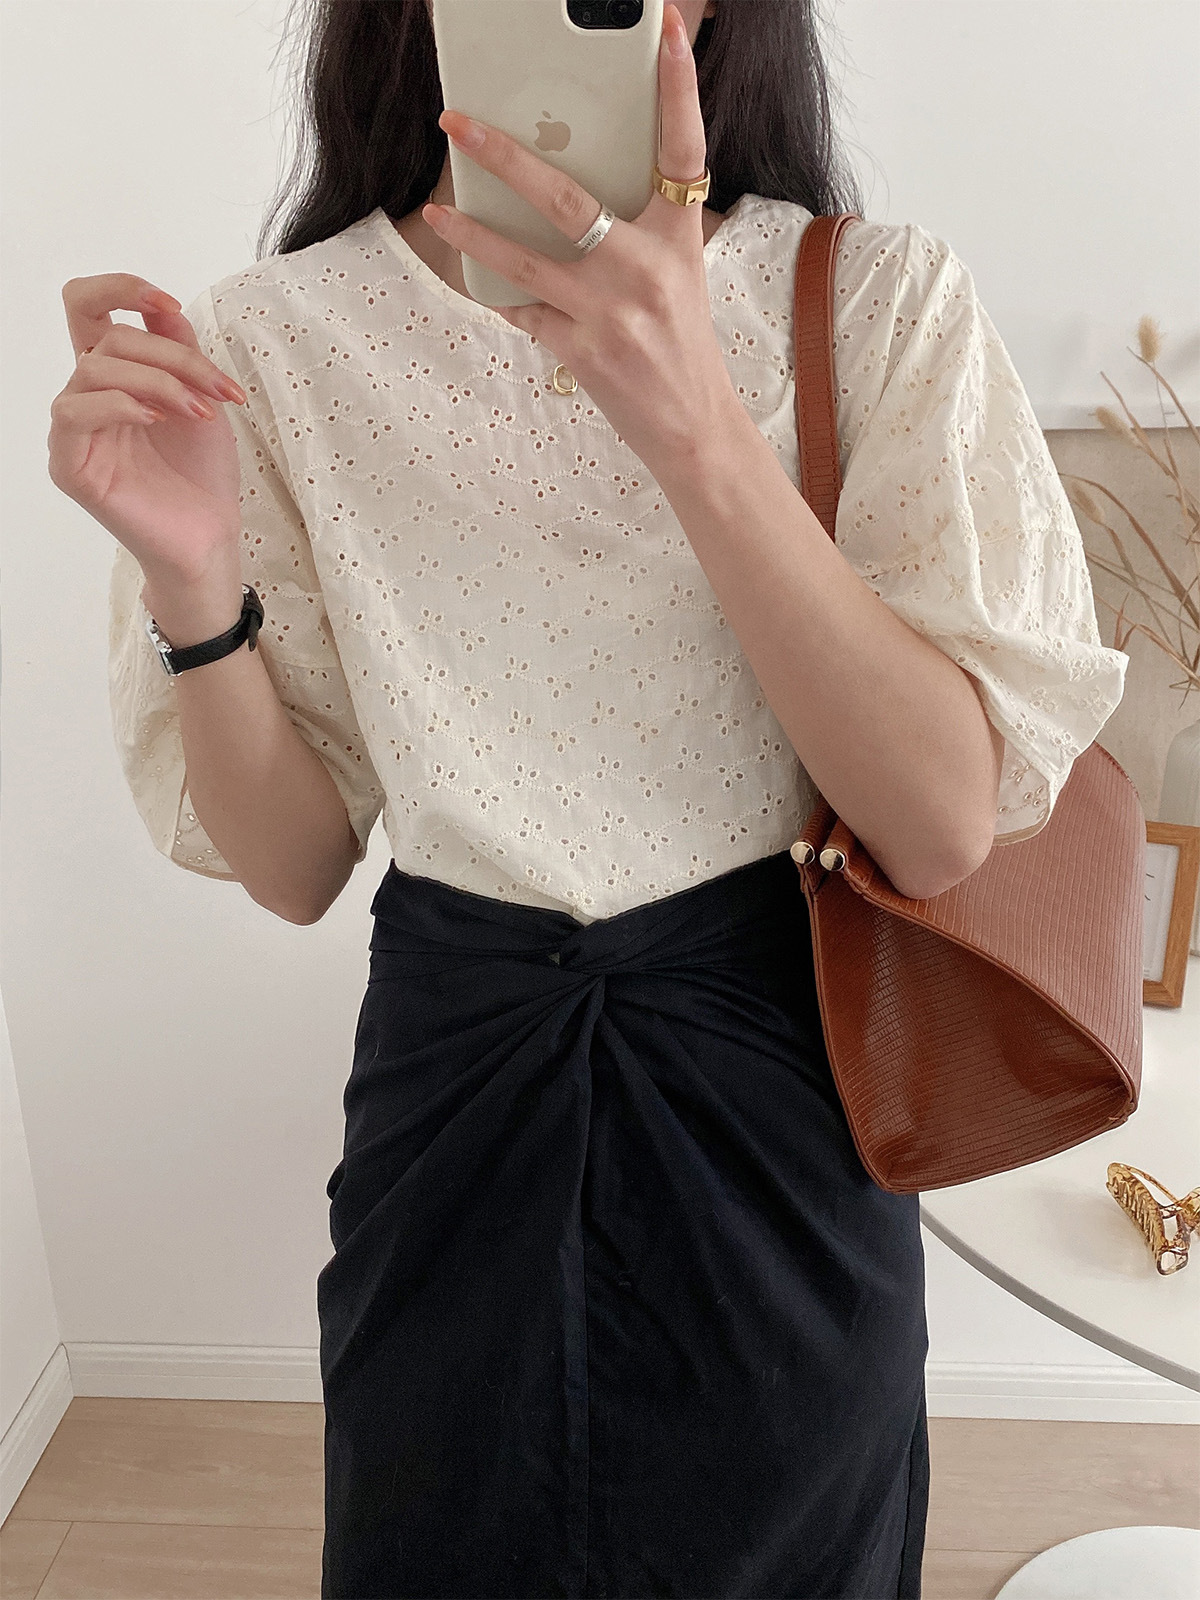 Classy Style Puff-Sleeves Shirt for Casual Wear